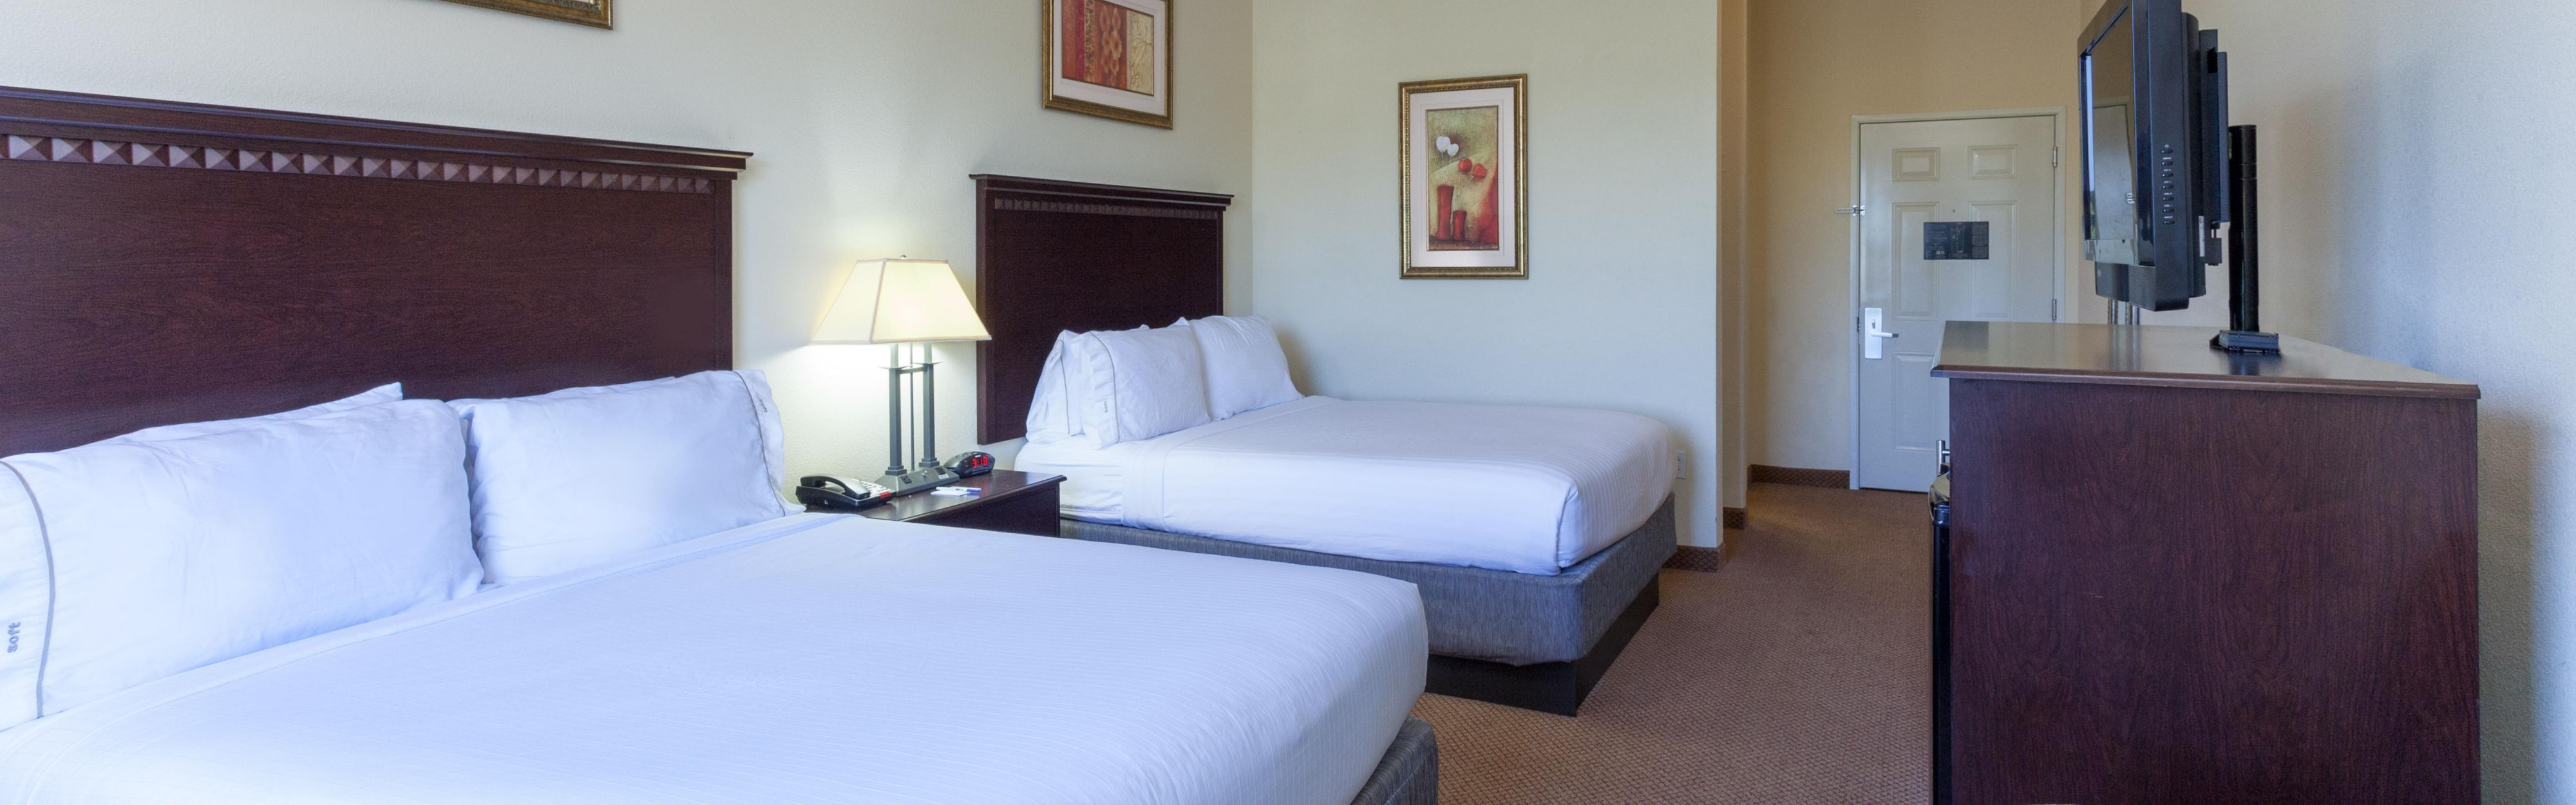 Holiday Inn Express & Suites Clarksville image 1